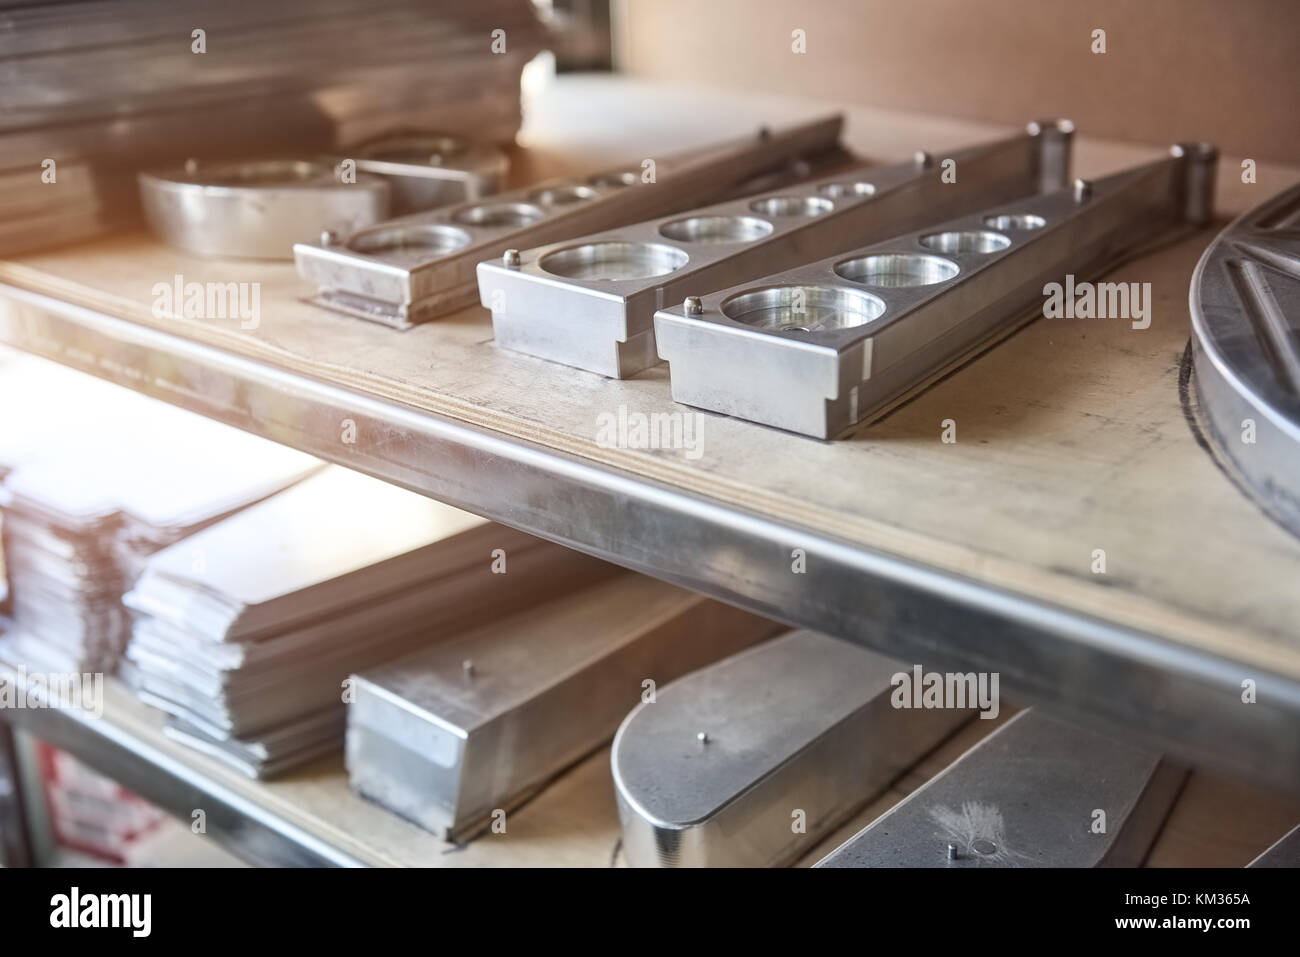 Stainless Steel Parts On Shelf Stock Photo Alamy - Stainless steel table parts